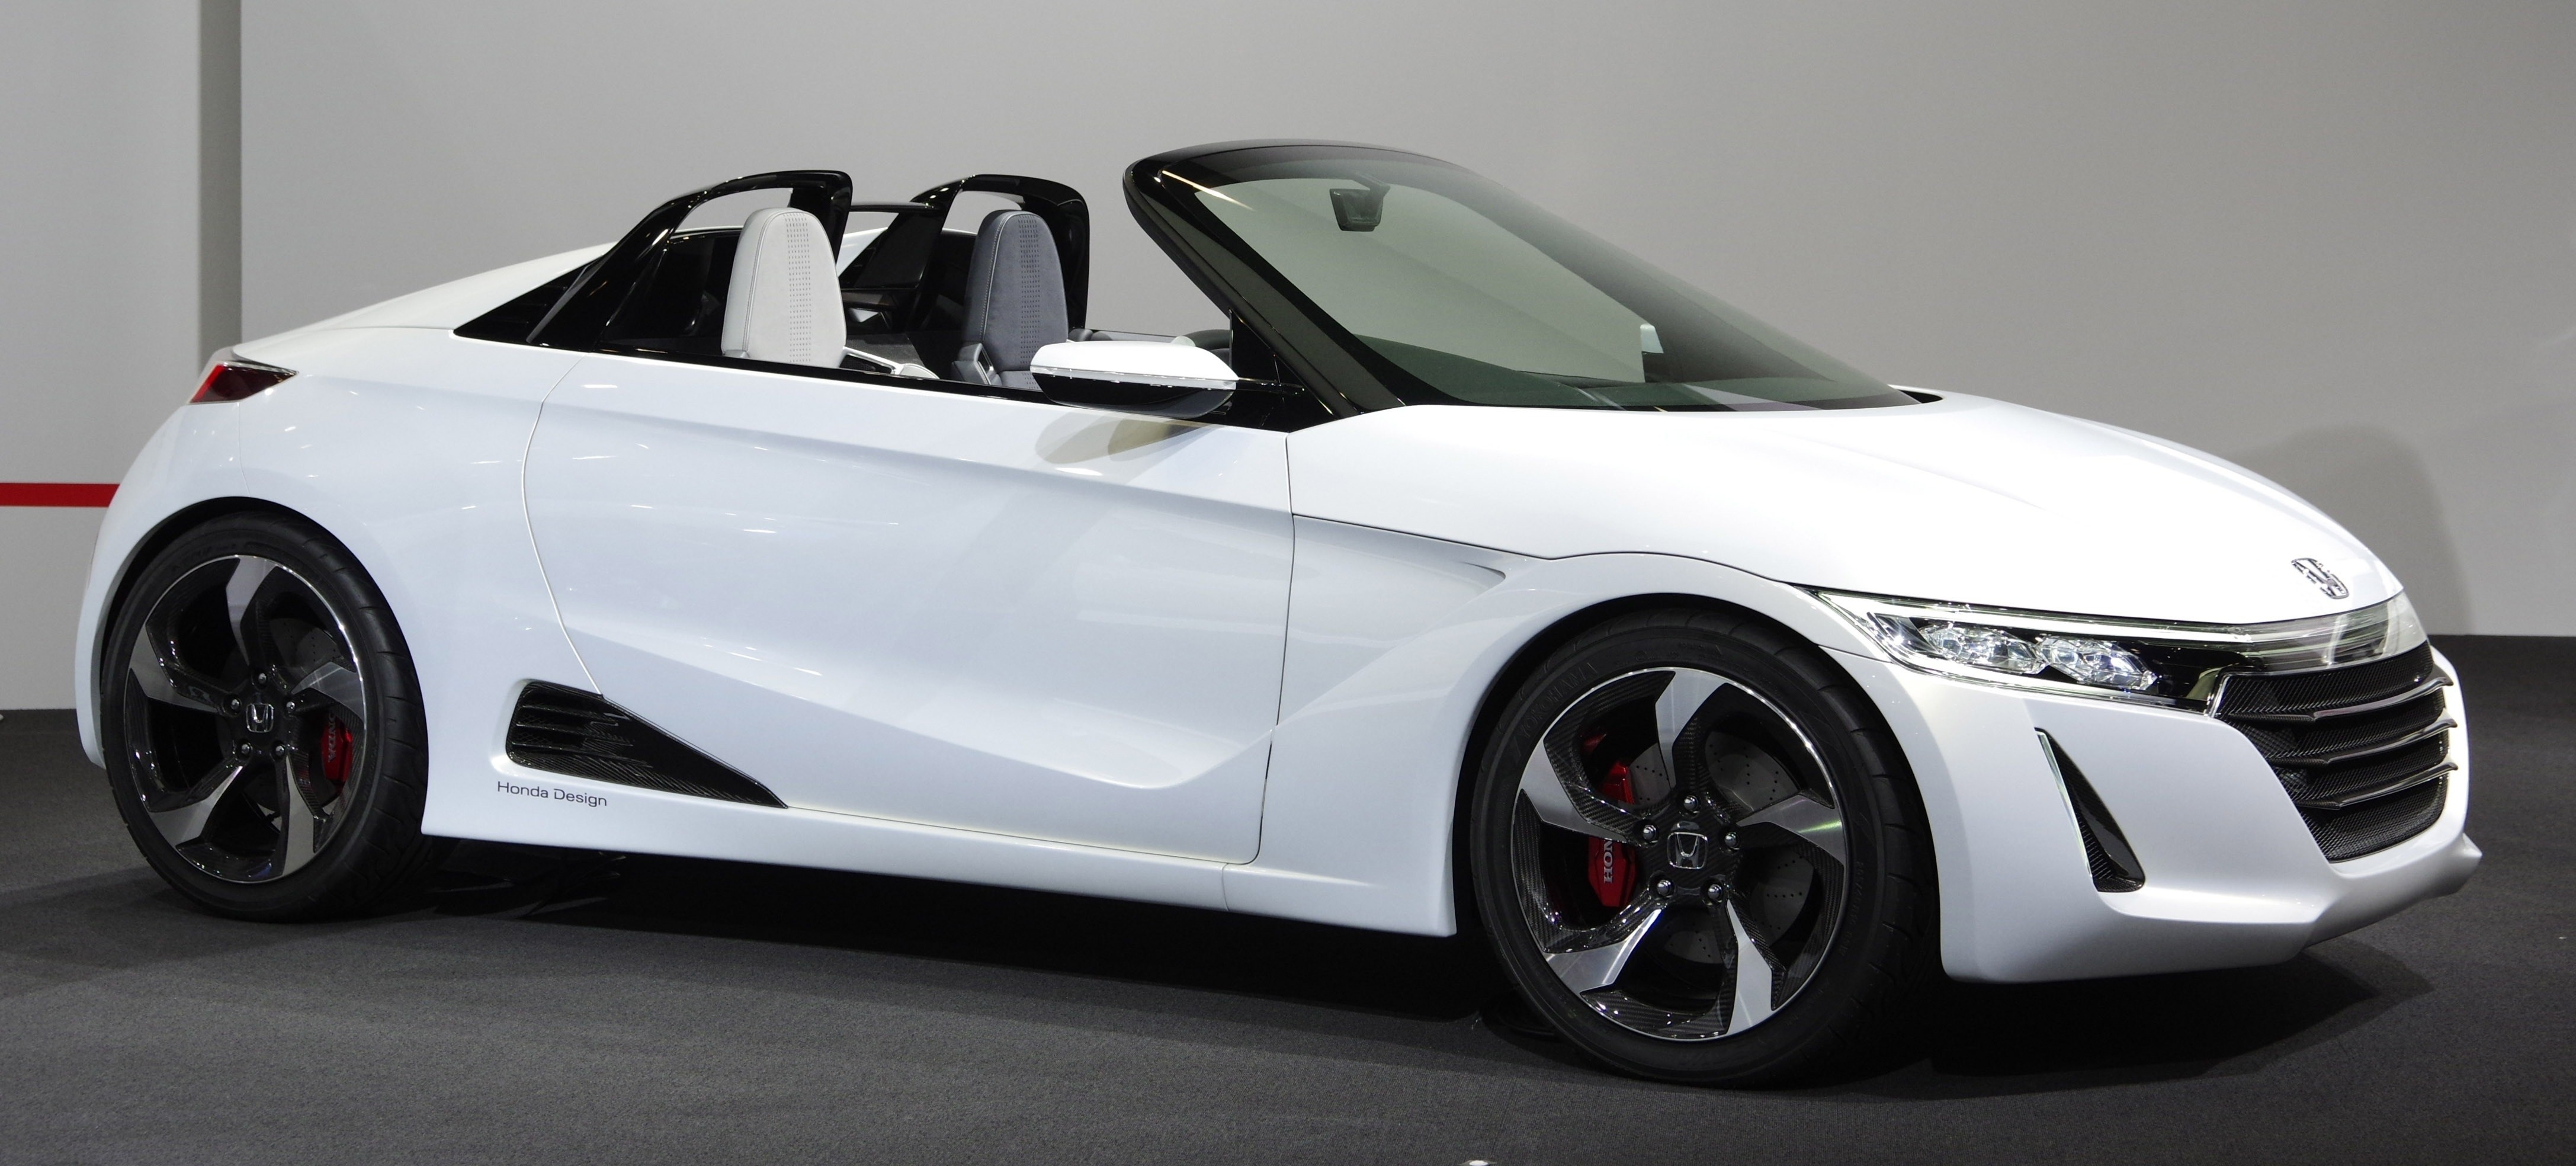 62 A 2020 Honda S660 Pricing